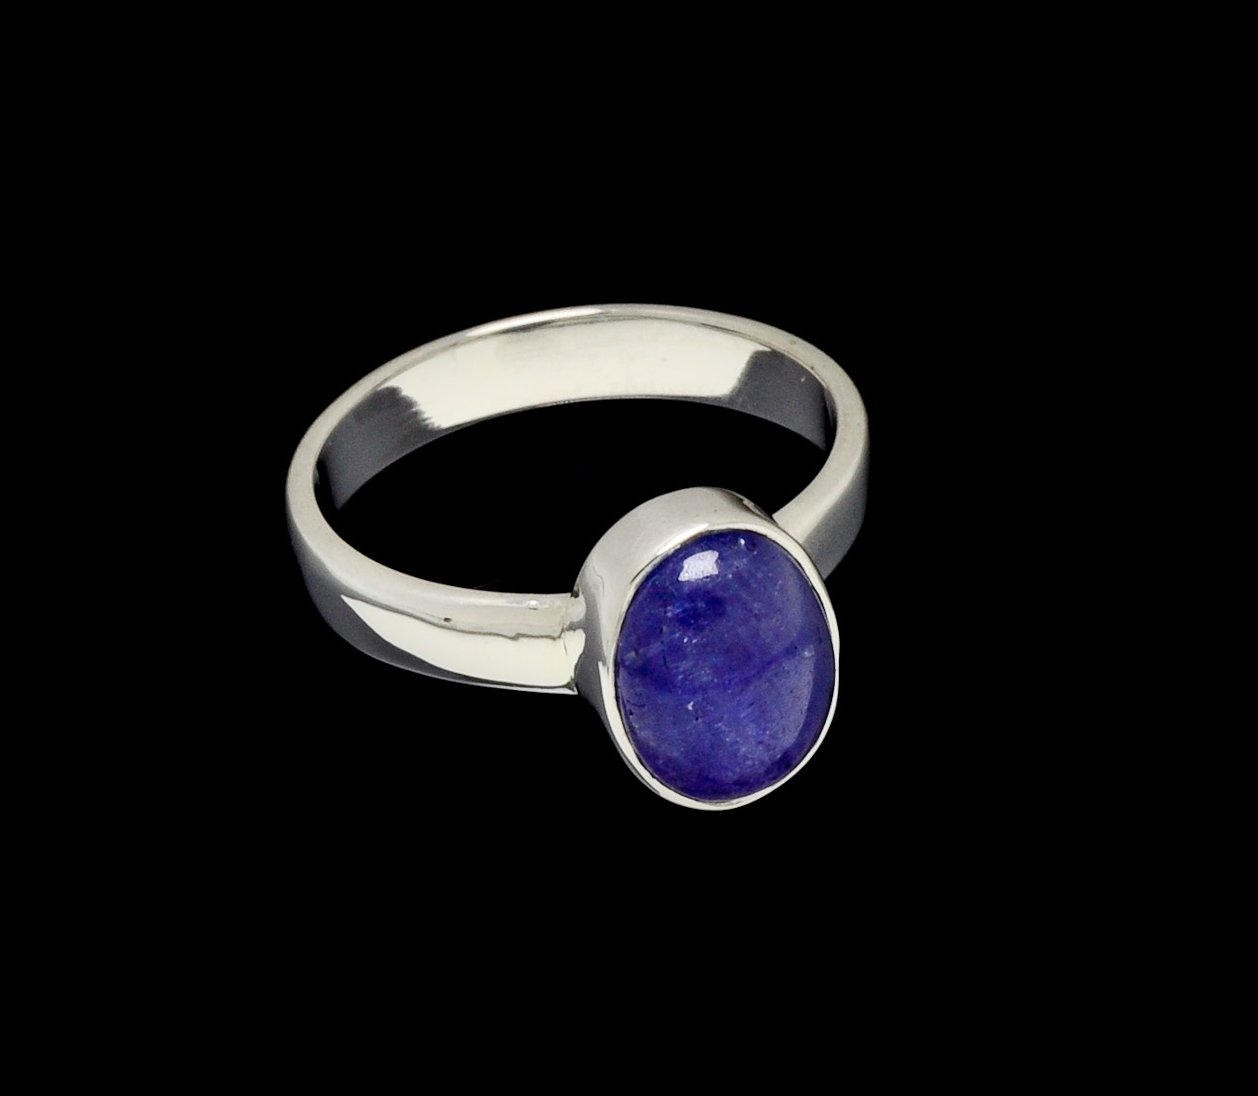 Tanzanite Ring 10mm x 7mm Oval Cut